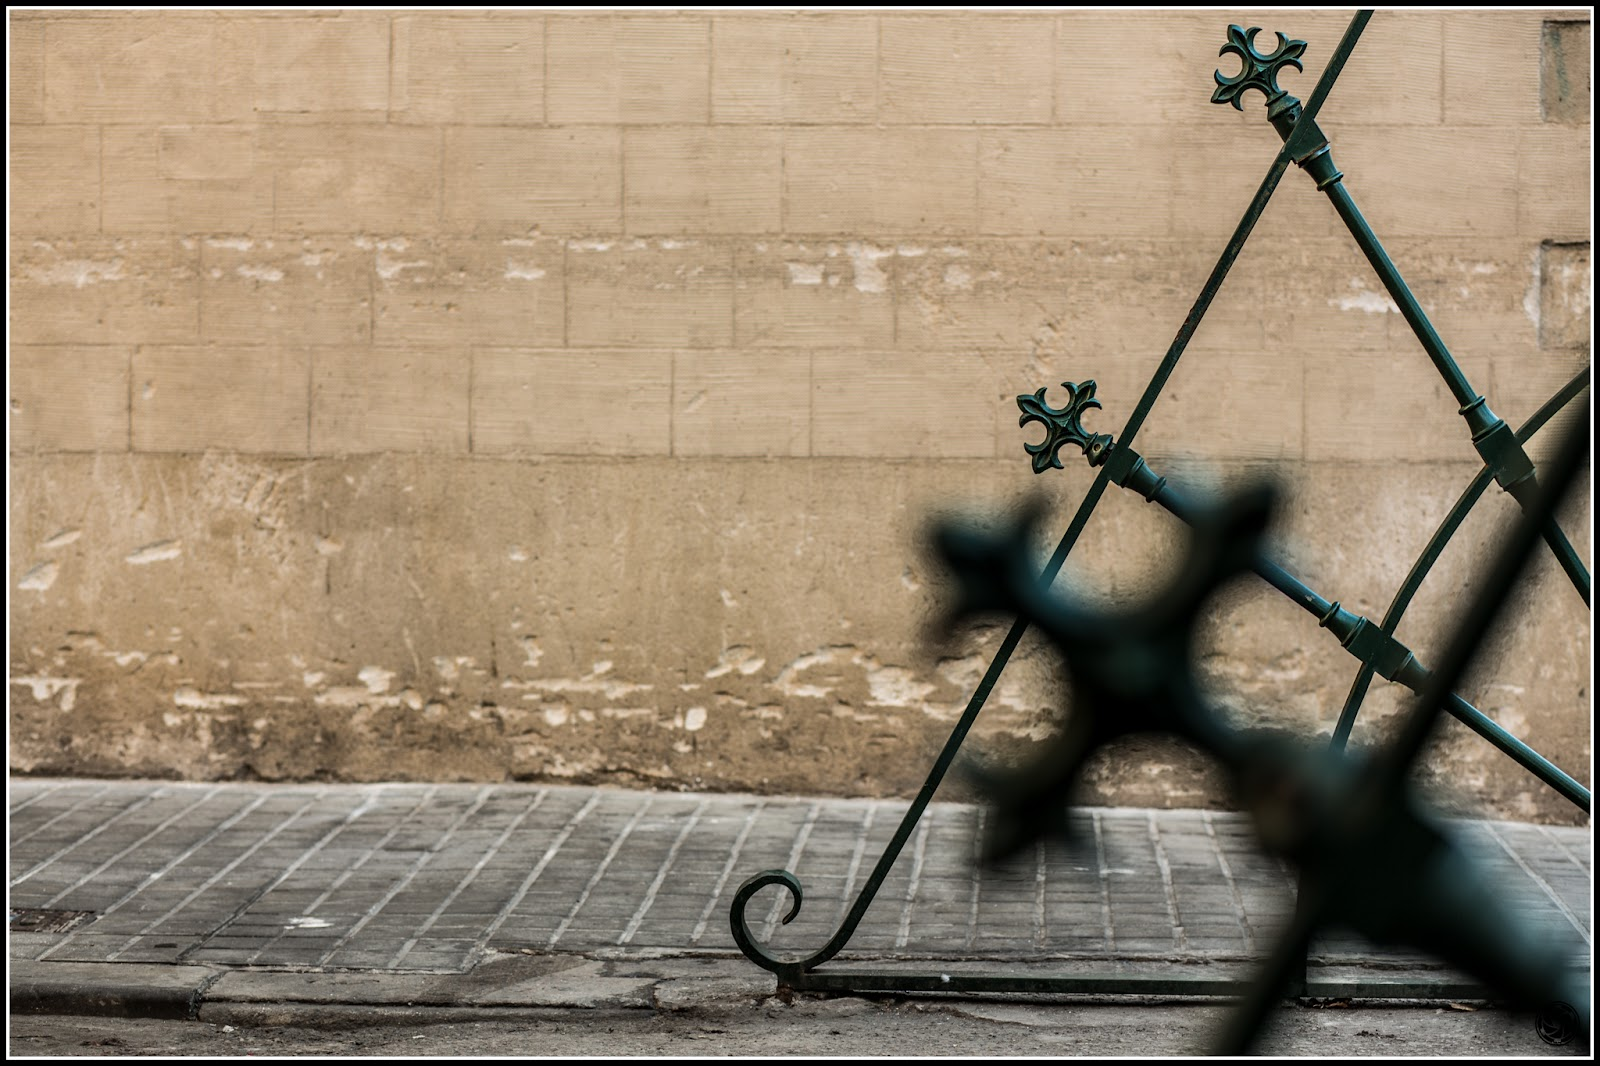 Tres cruces :: Canon EOS 5D MkIII | ISO100 | Canon 85mm | f/4.0 | 1/50s